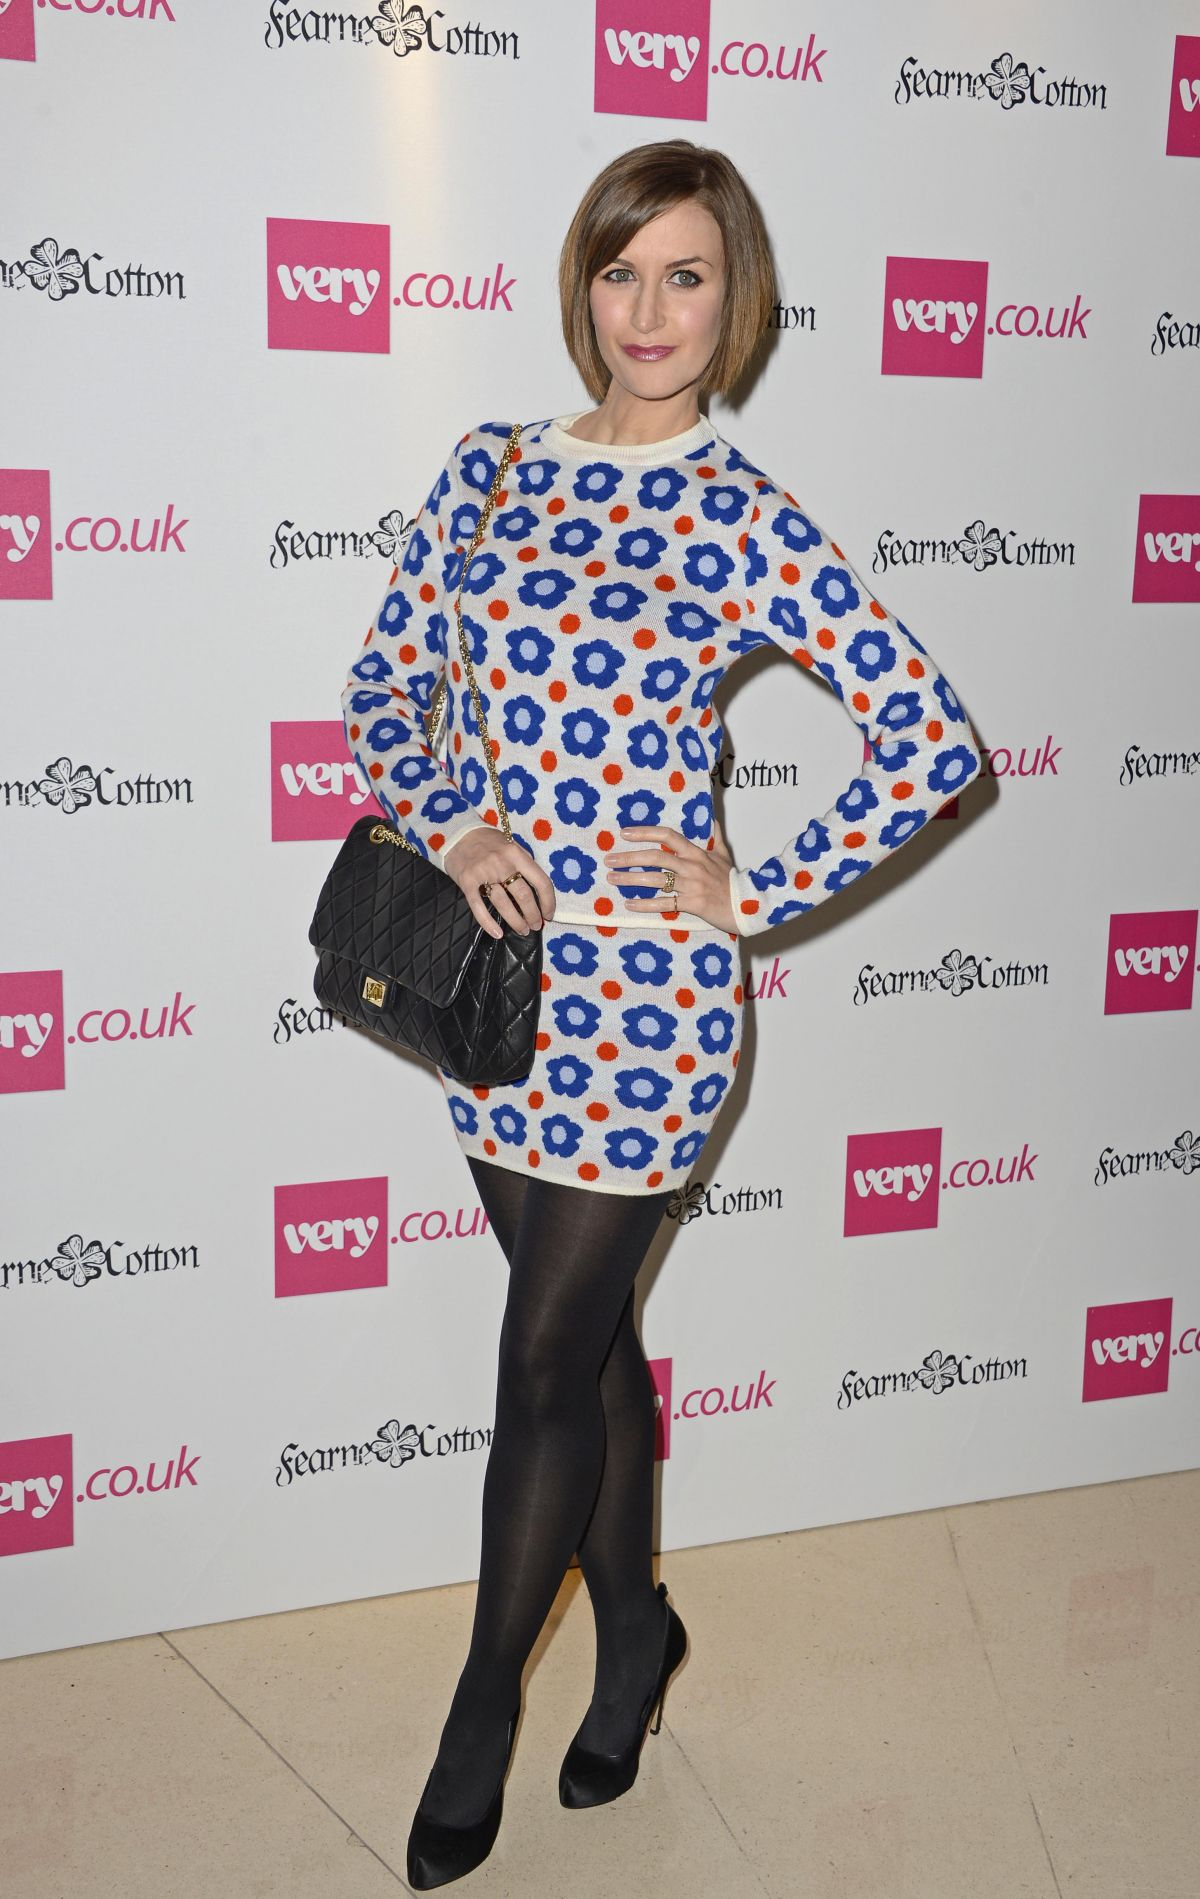 Katherine Kelly At Very.co.uk SS14 Collection Launch Party In ...